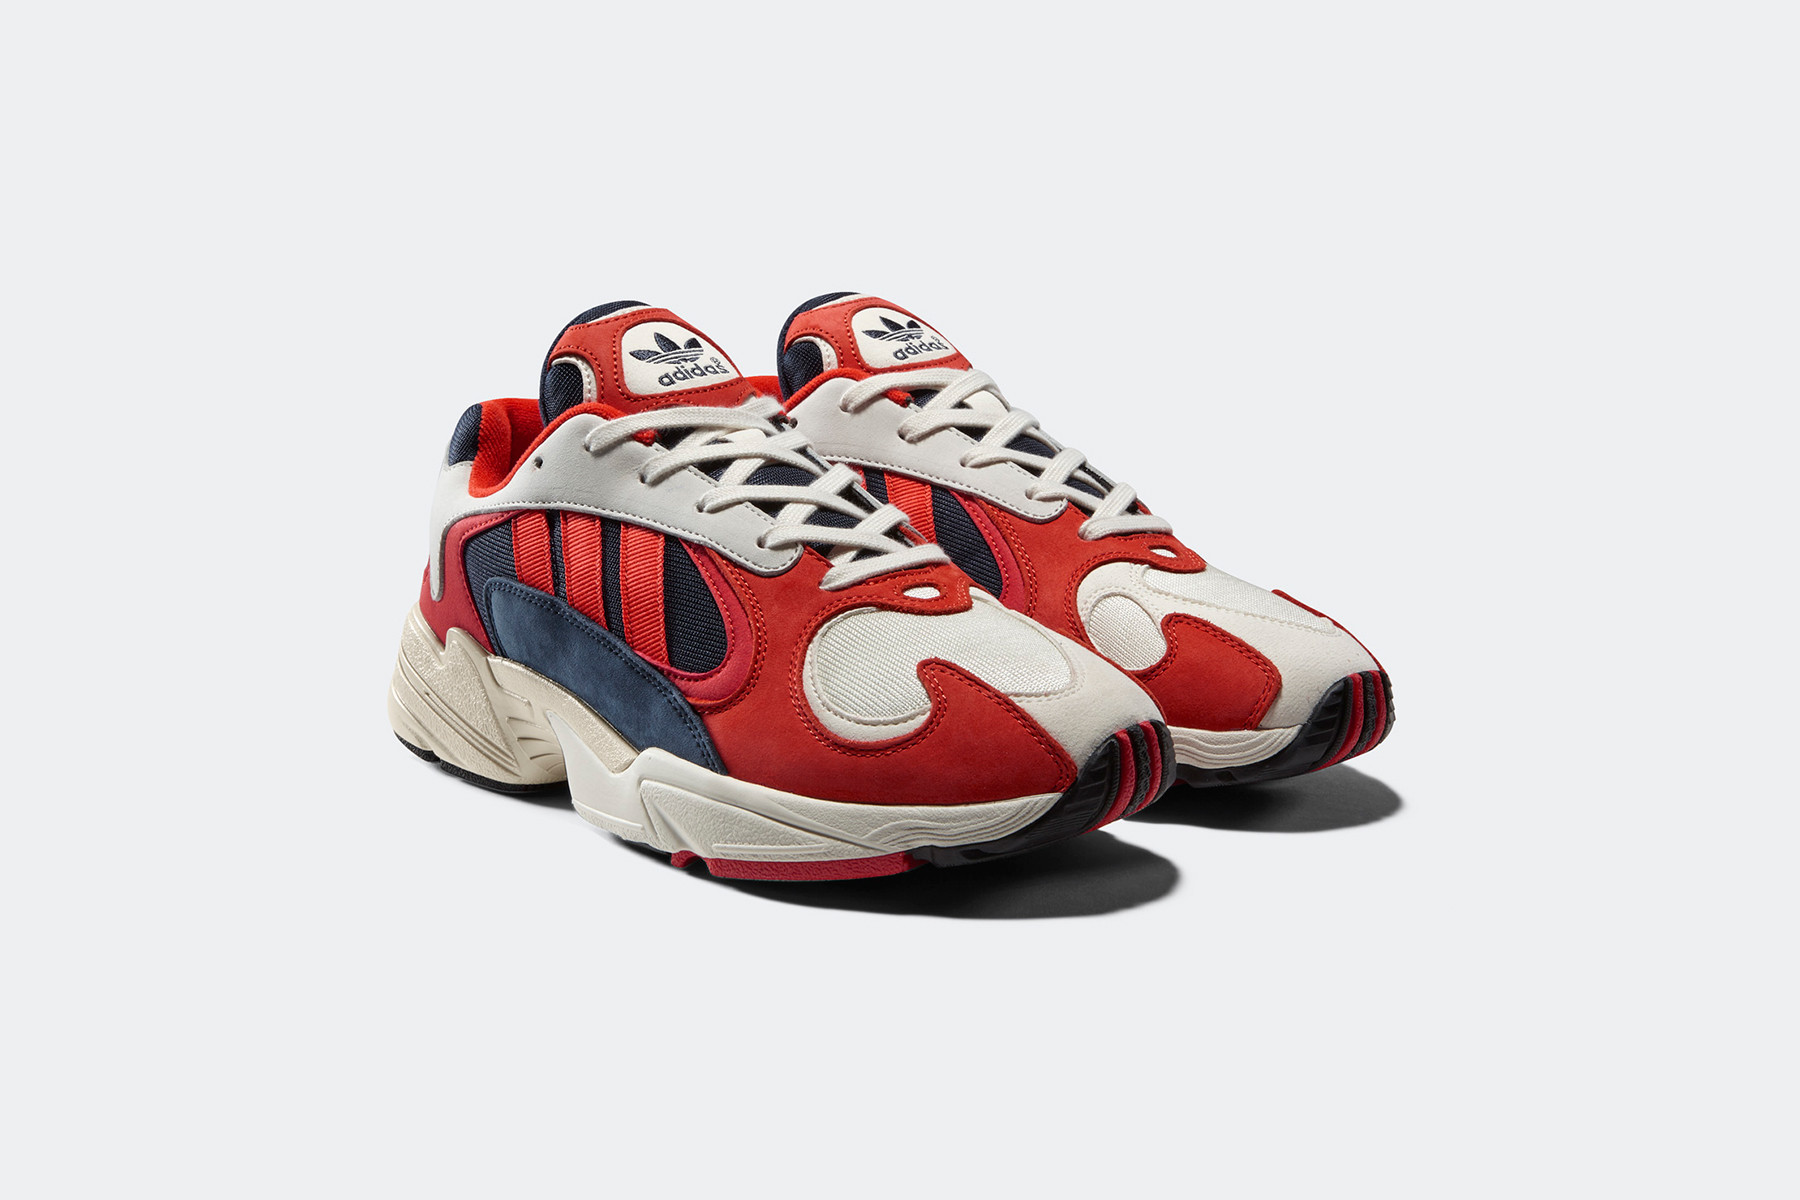 The adidas Yung 1 Is Your New Favorite